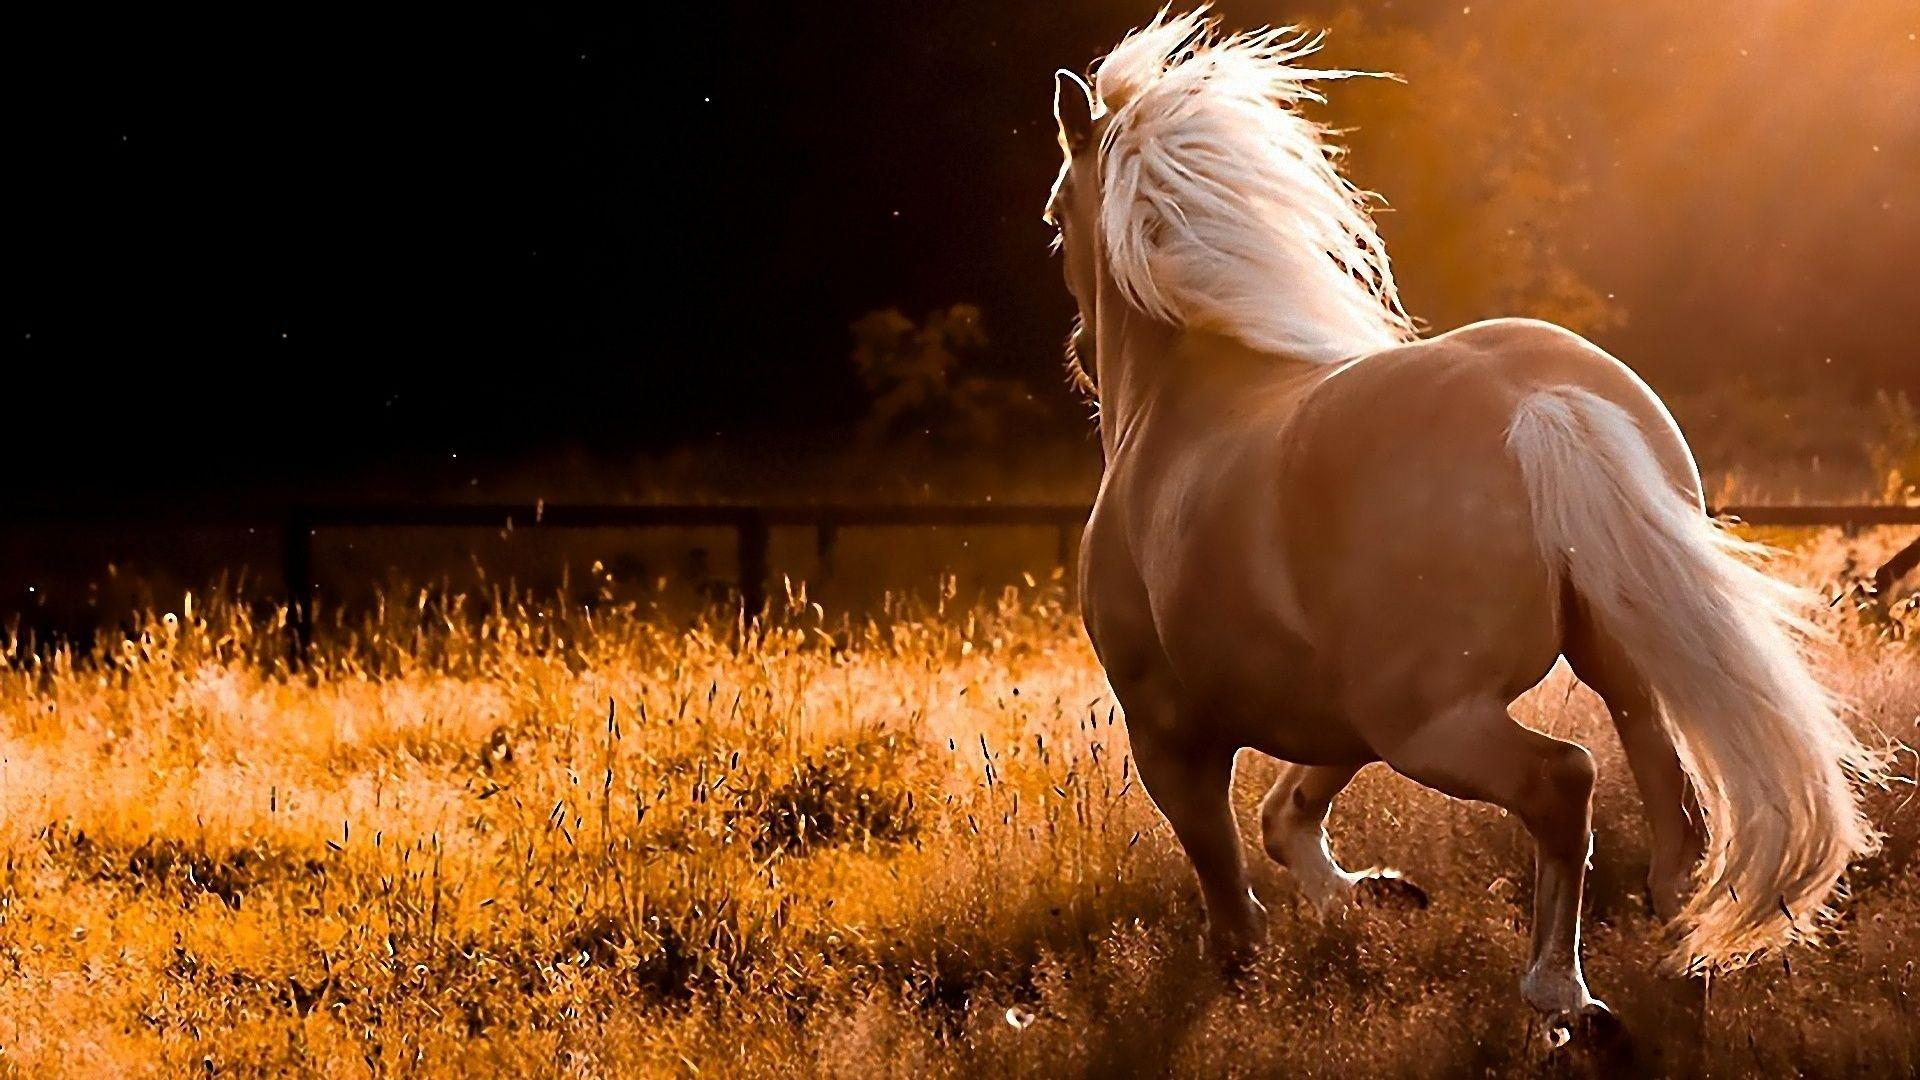 Horse Backgrounds Wallpapers Wallpaper Cave